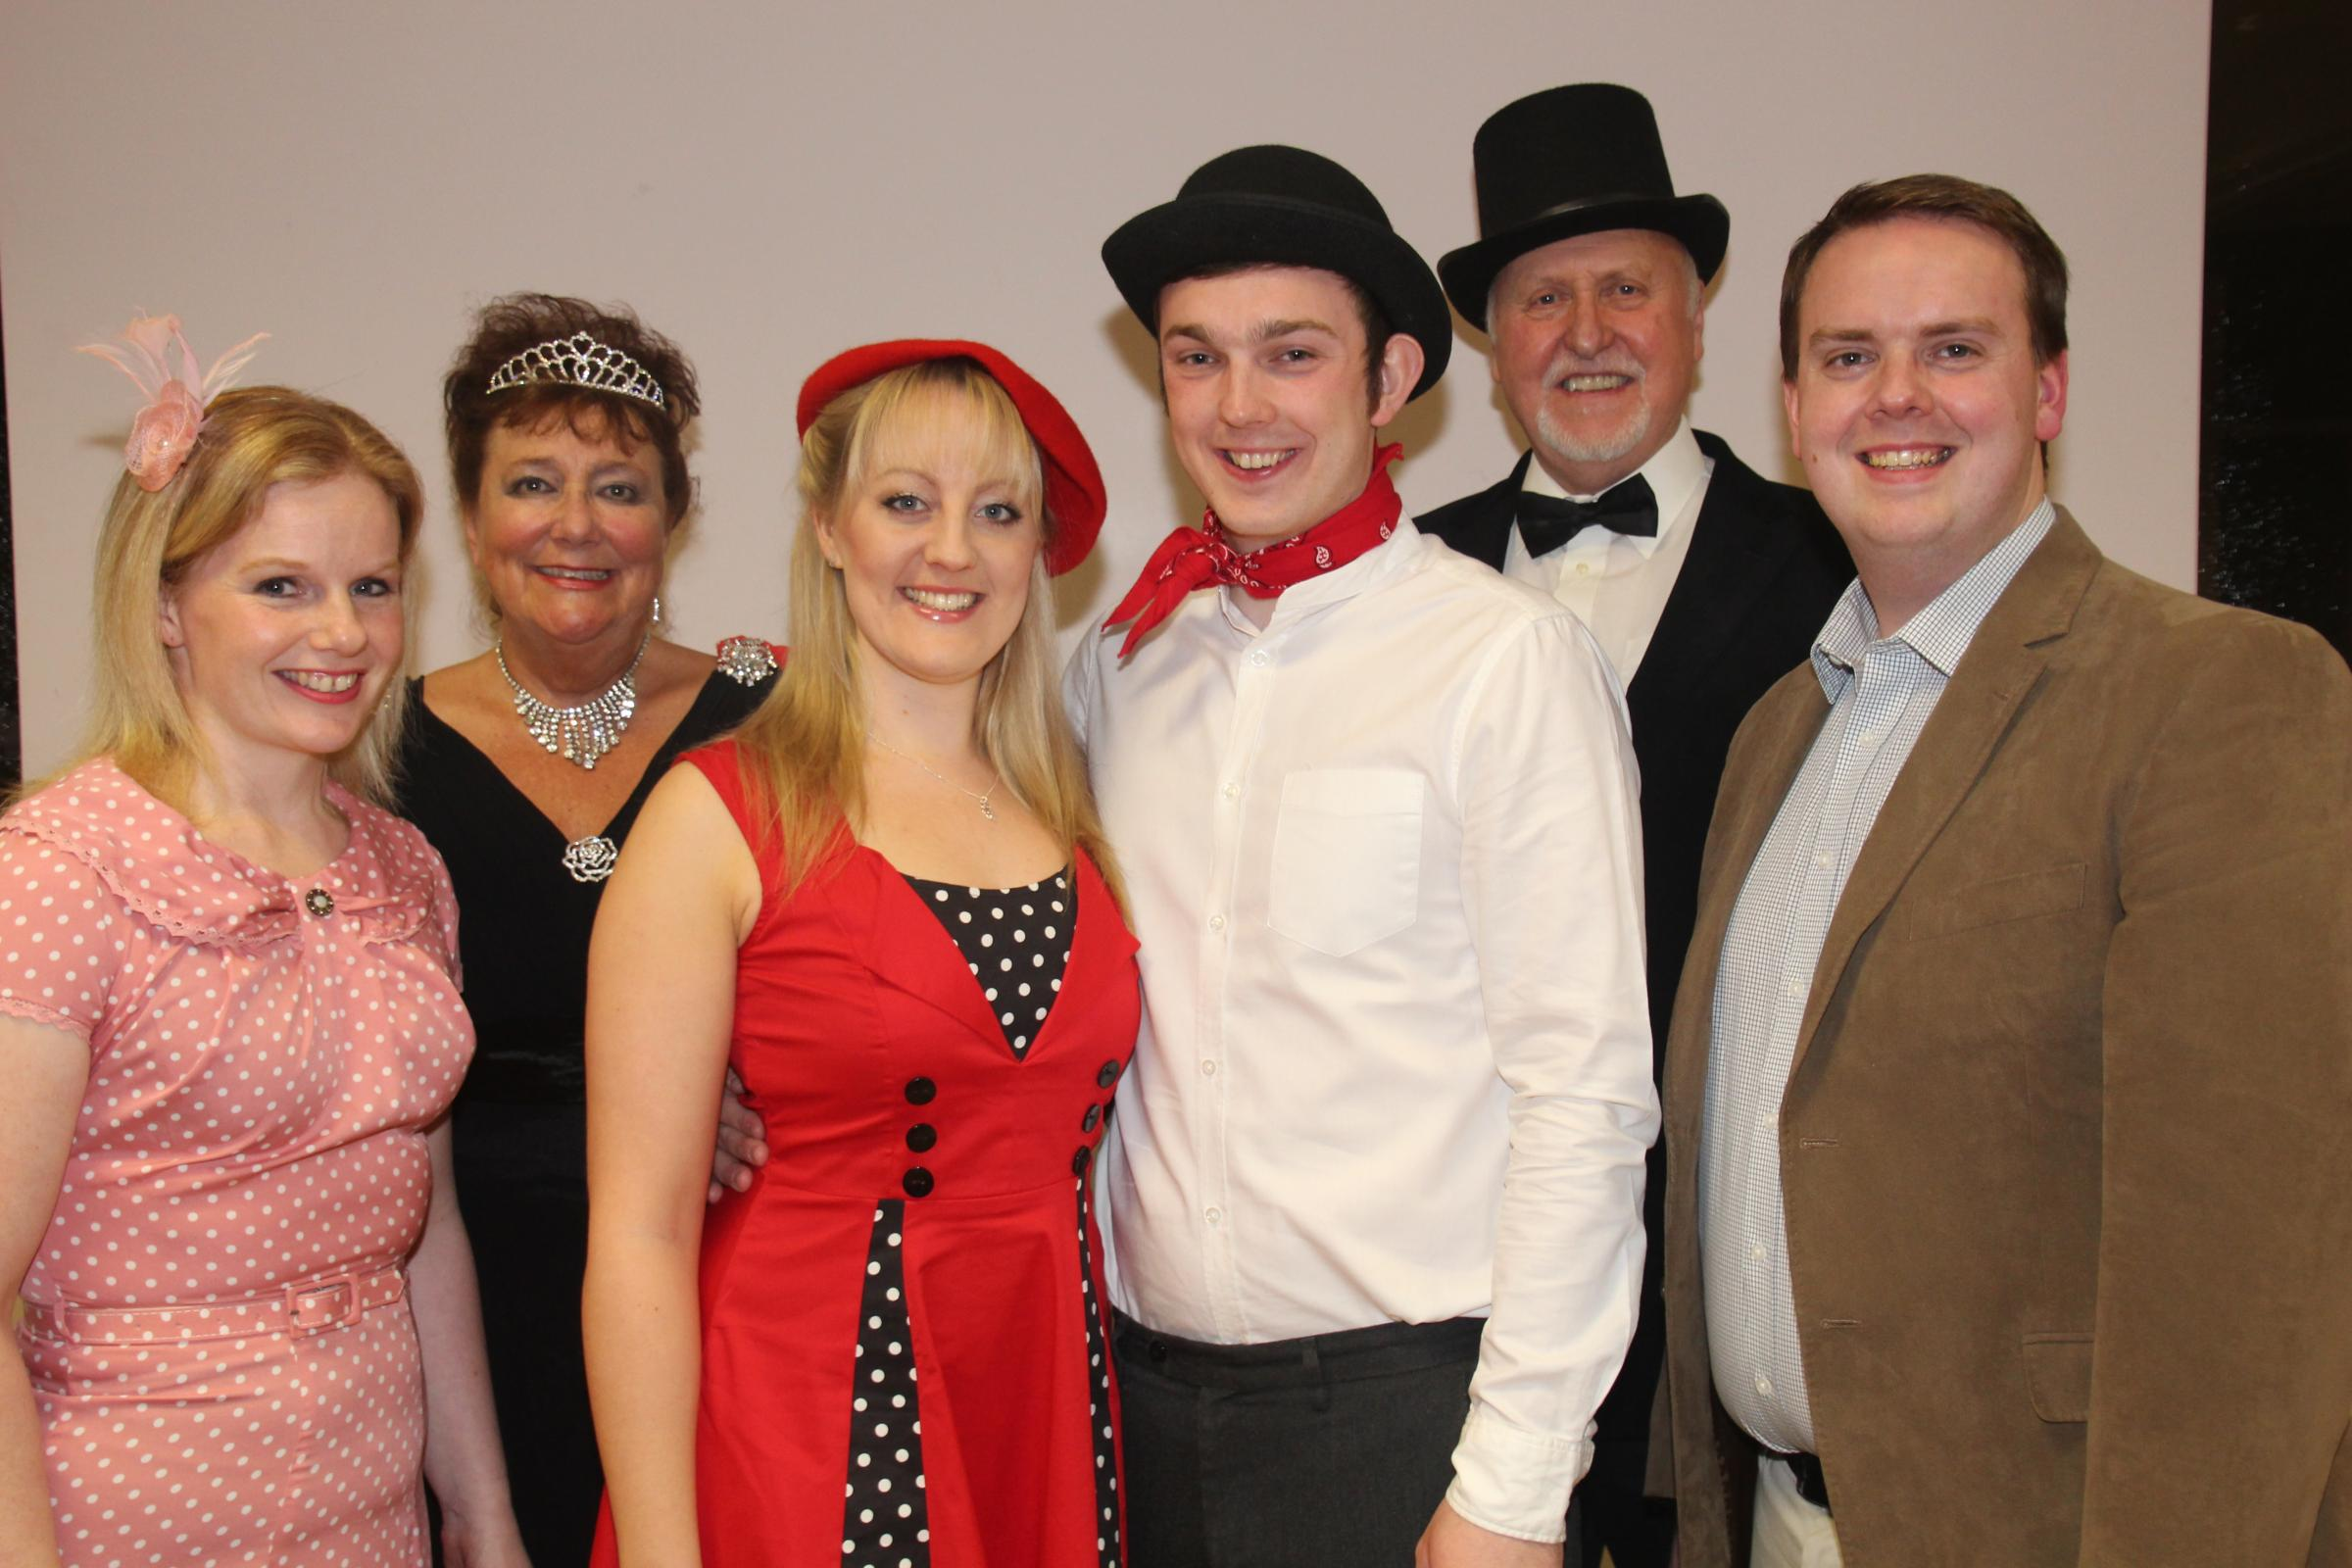 L-r - Gabby Thompson as Lady Jacqueline, with Richard Cooper and Rebecca Bate (centre) as Bill Snibson and Sally Smith, and Simon Wilkinson as Gerald. Back l-r - Di Hingley as the Duchess of Dene and John Clay as Sir John Tremayne.